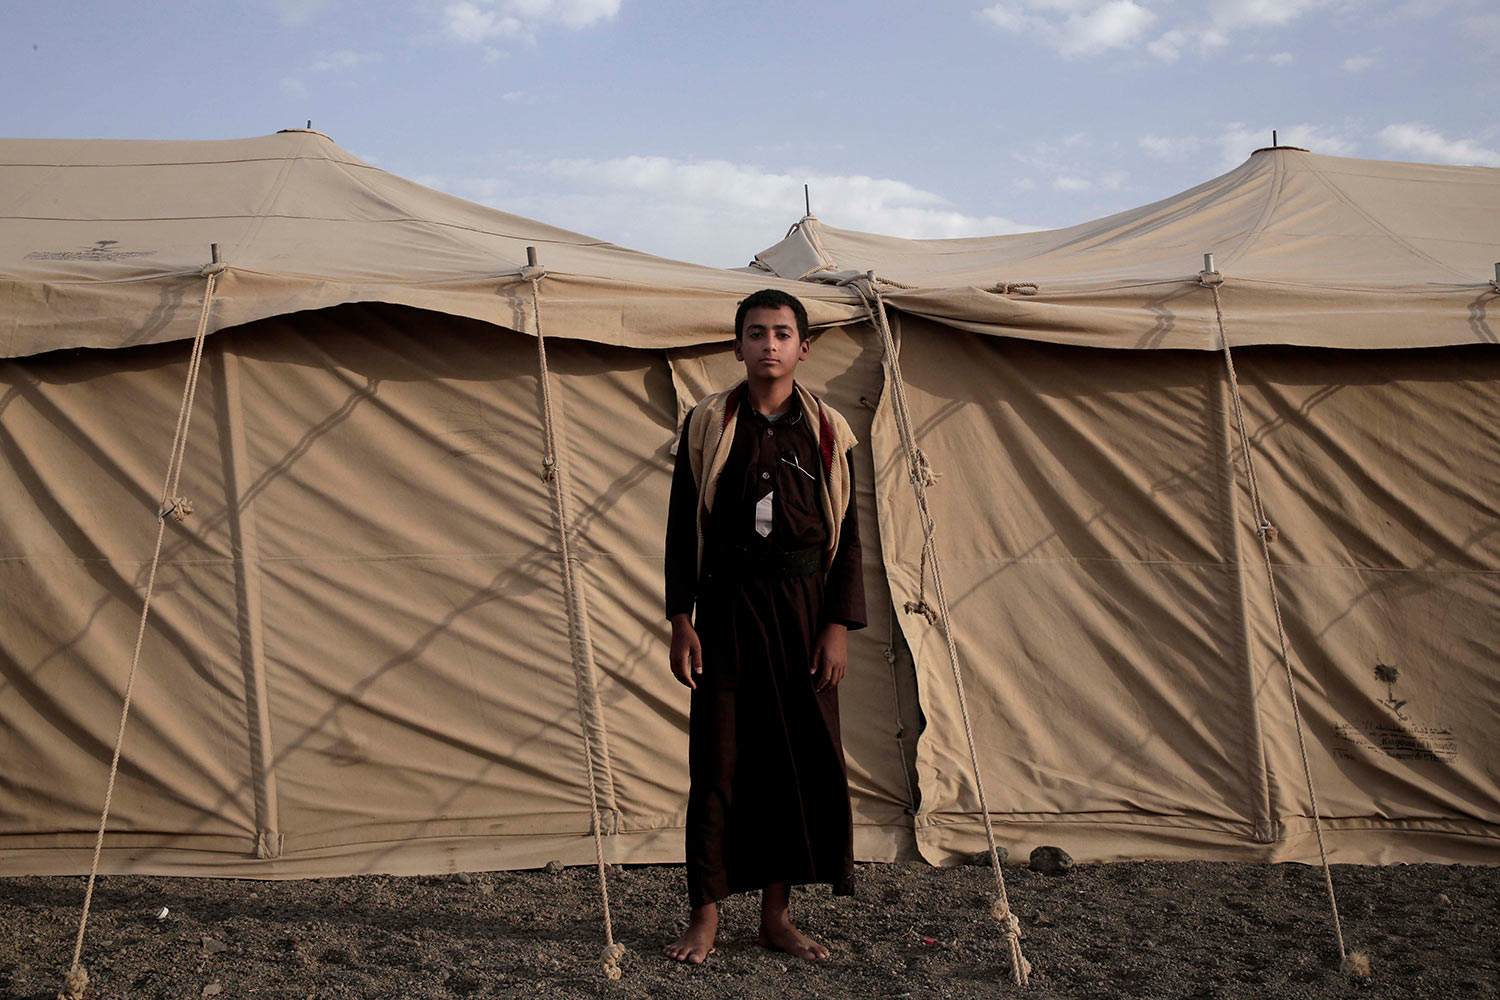 Sadek, a 14 year-old former child soldier, poses for a photograph at a camp for displaced persons where he took shelter with his family, in Marib, Yemen, in this July 27, 2018, photo. (AP Photo/Nariman El-Mofty)